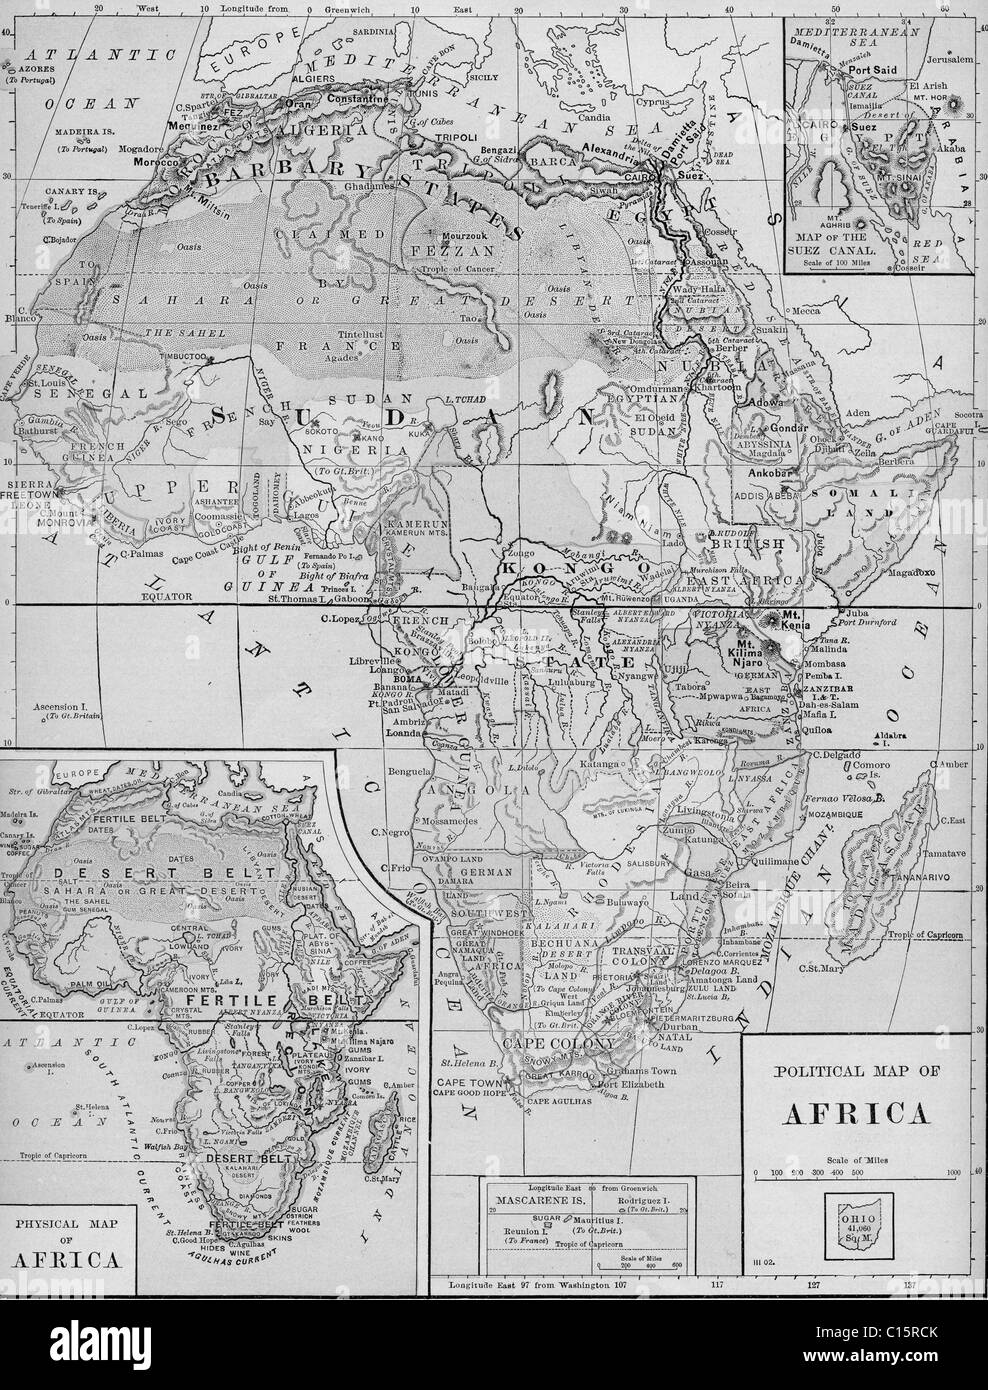 Old map of Africa from original geography textbook, 1903 Stock Photo ...